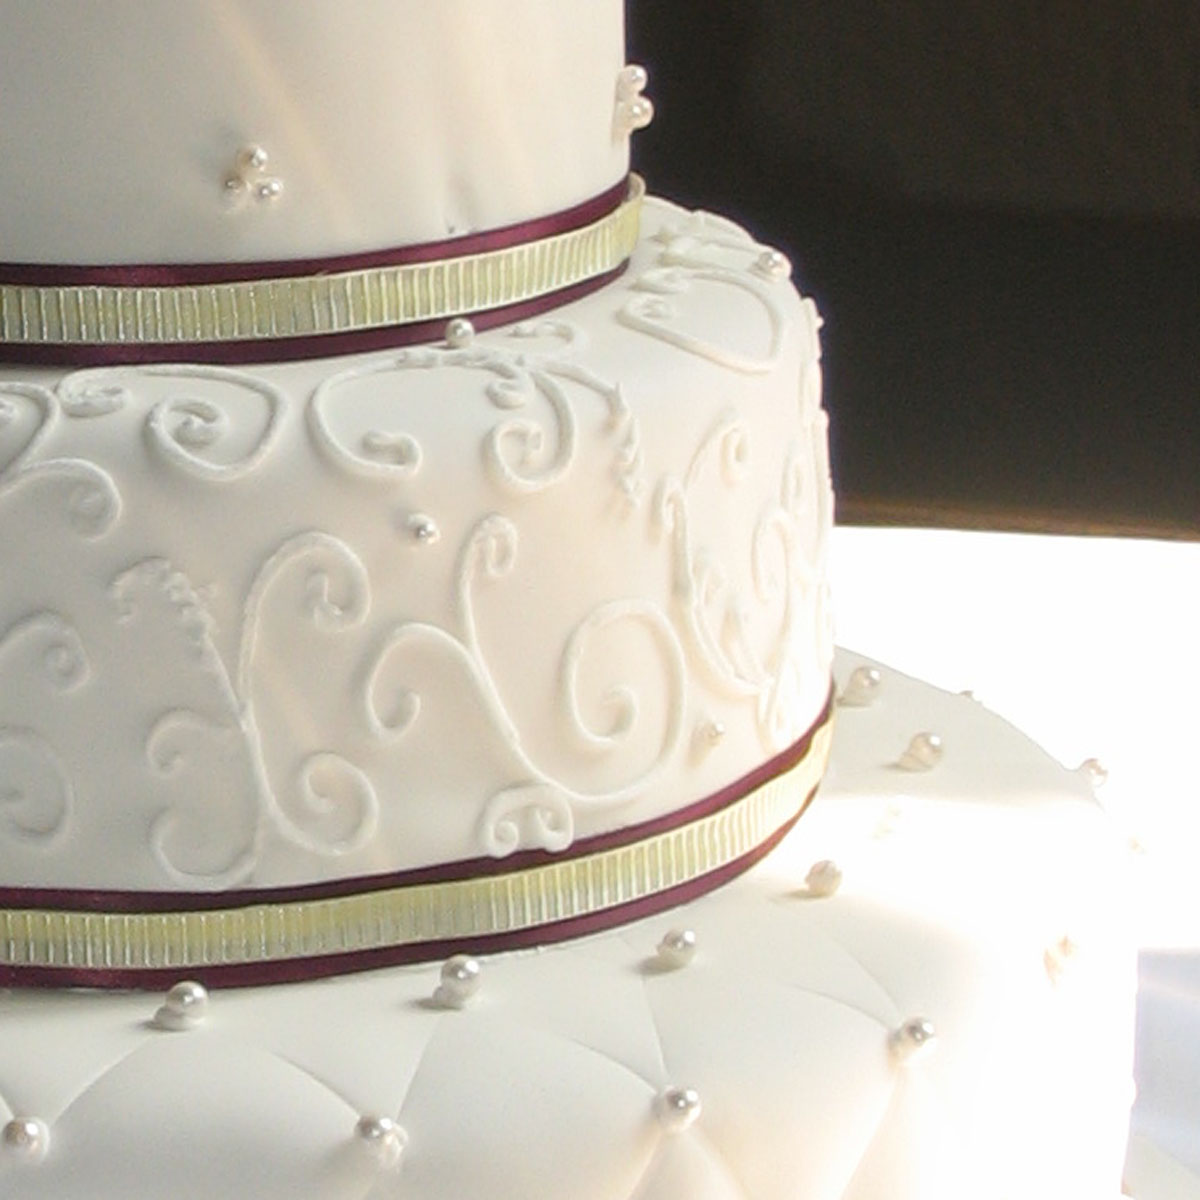 wedding cakes oklahoma city area religious liberty and rights is not a zero sum 25167